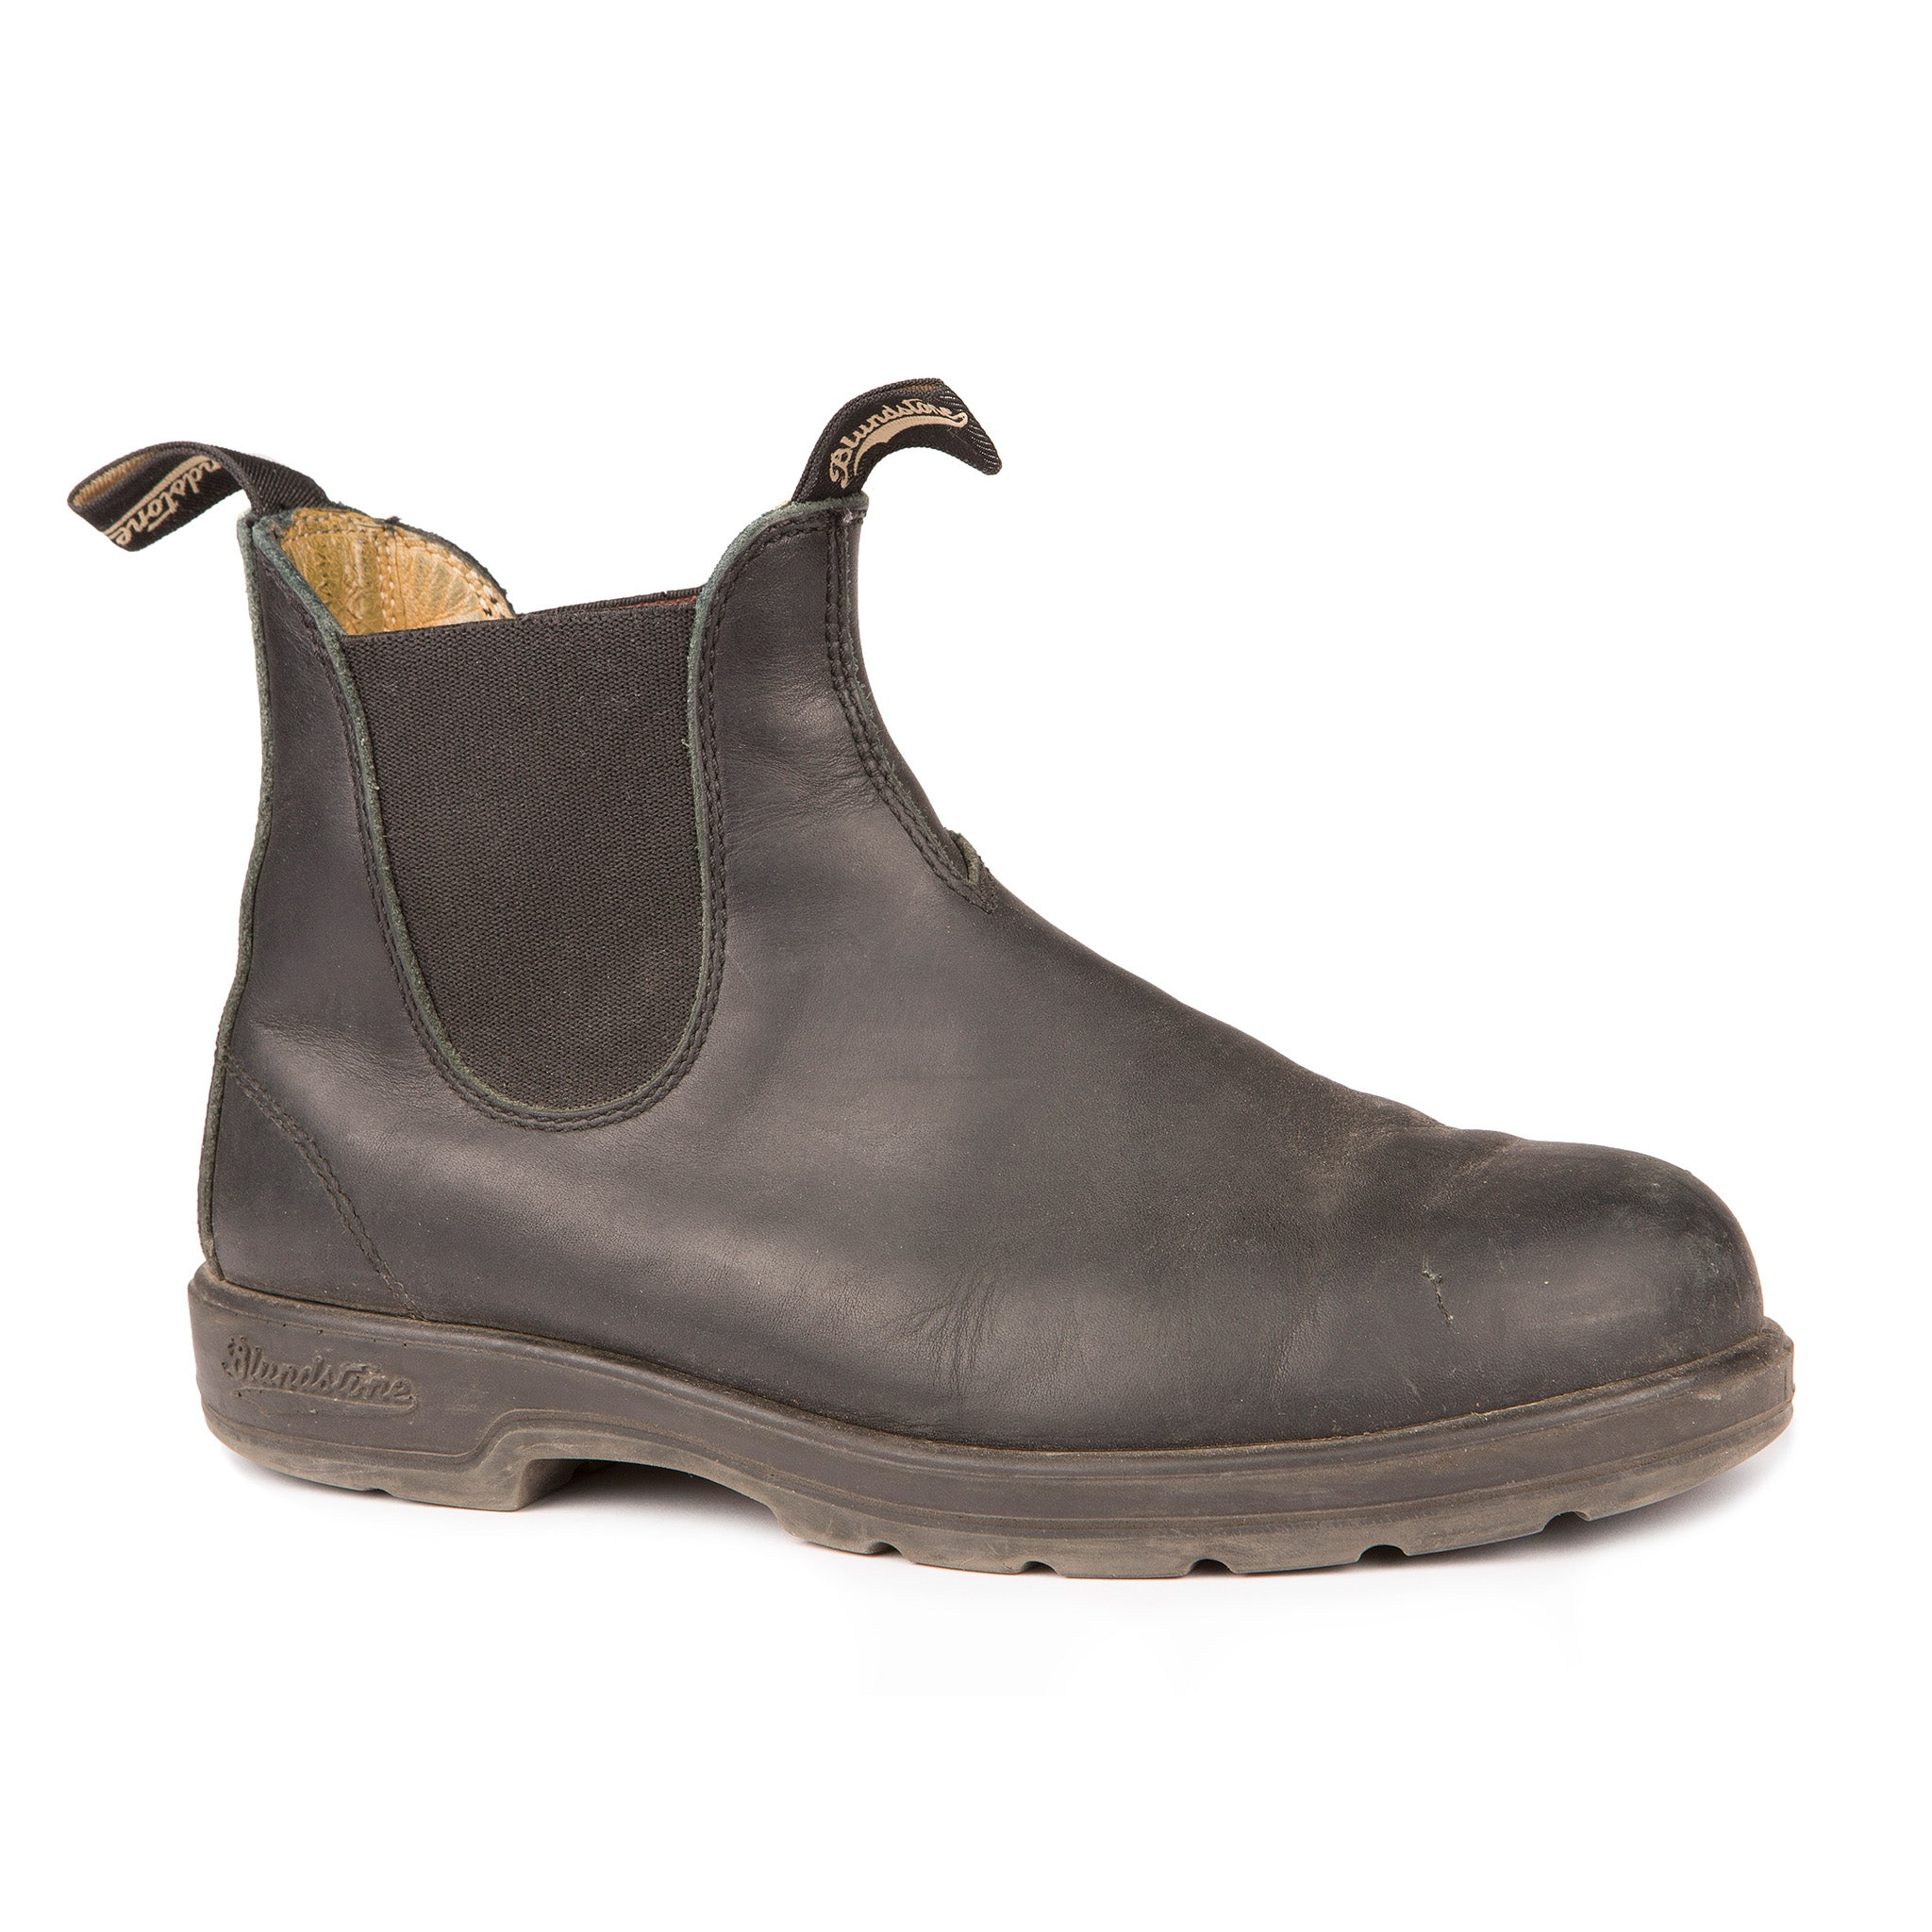 87849521998 558 Blundstone Leather Lined Classic Black